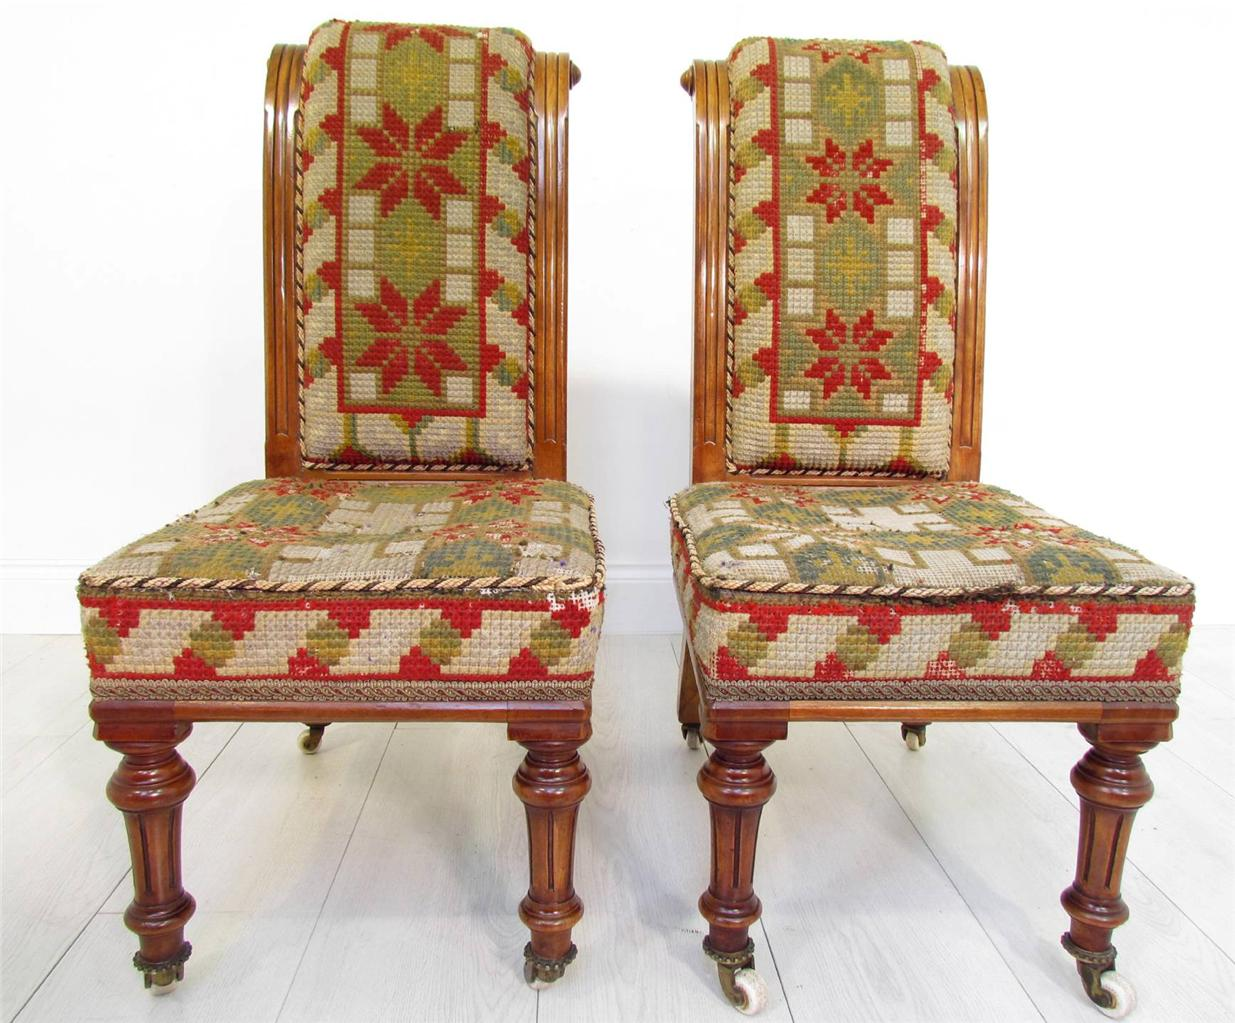 A Good Antique Pair of 19 th C Walnut Bedroom Chairs